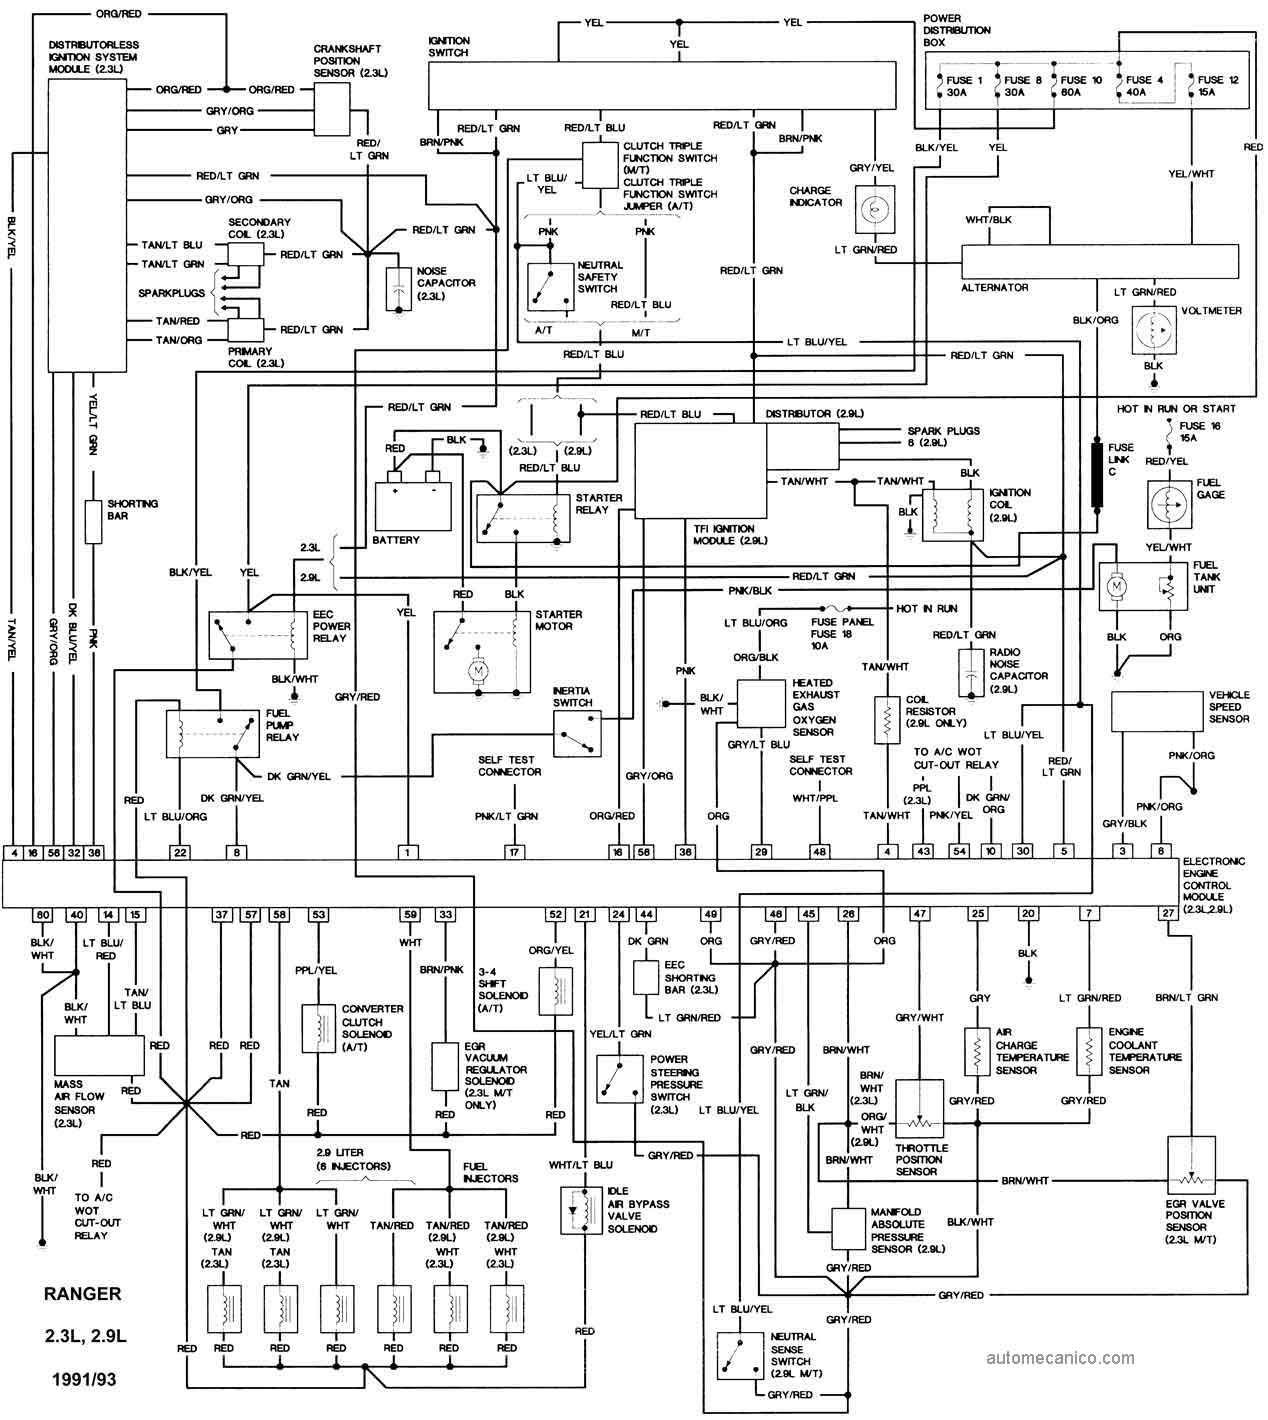 2000 Ford F 250 Transmission Wiring Diagram also 1997 Ford Mustang Engine Oxygen Sensor Diagram also Schematics h as well Ford Power Mirror Wiring Diagram also 2002 Ford F 150 Vacuum Diagram. on 1999 ford f 150 wire harness